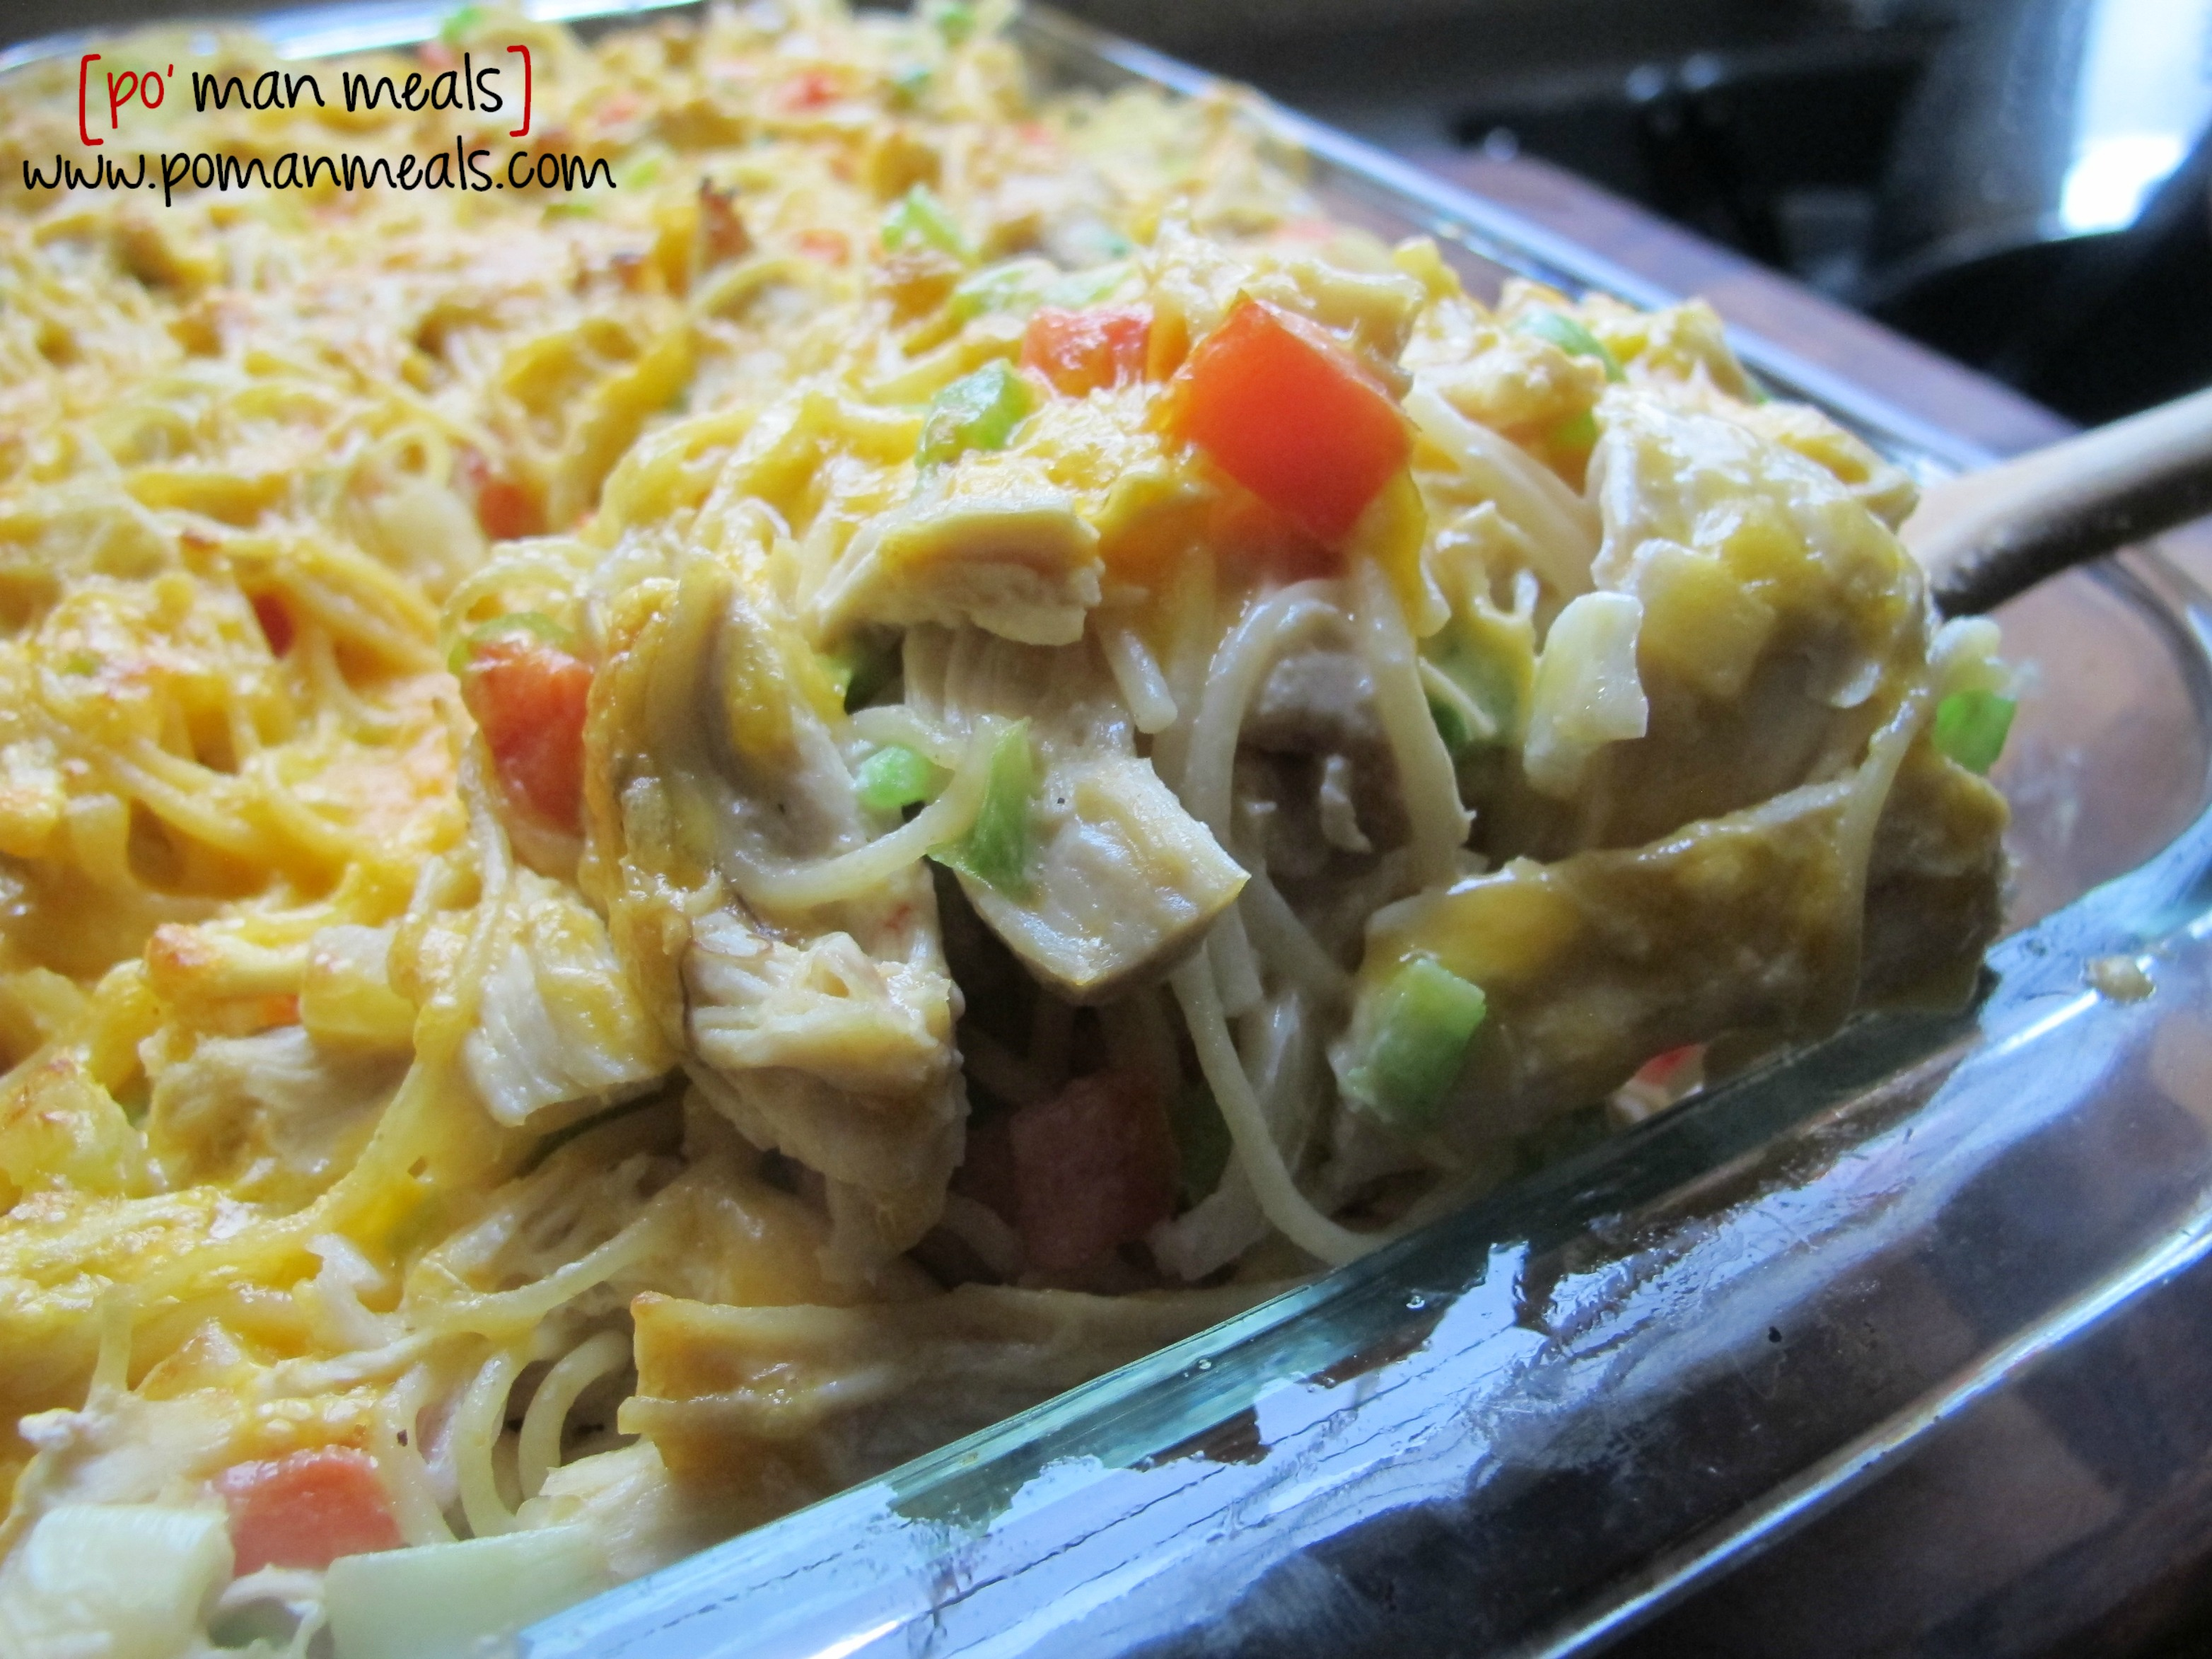 po' man meals - baked cream cheese chicken spaghetti